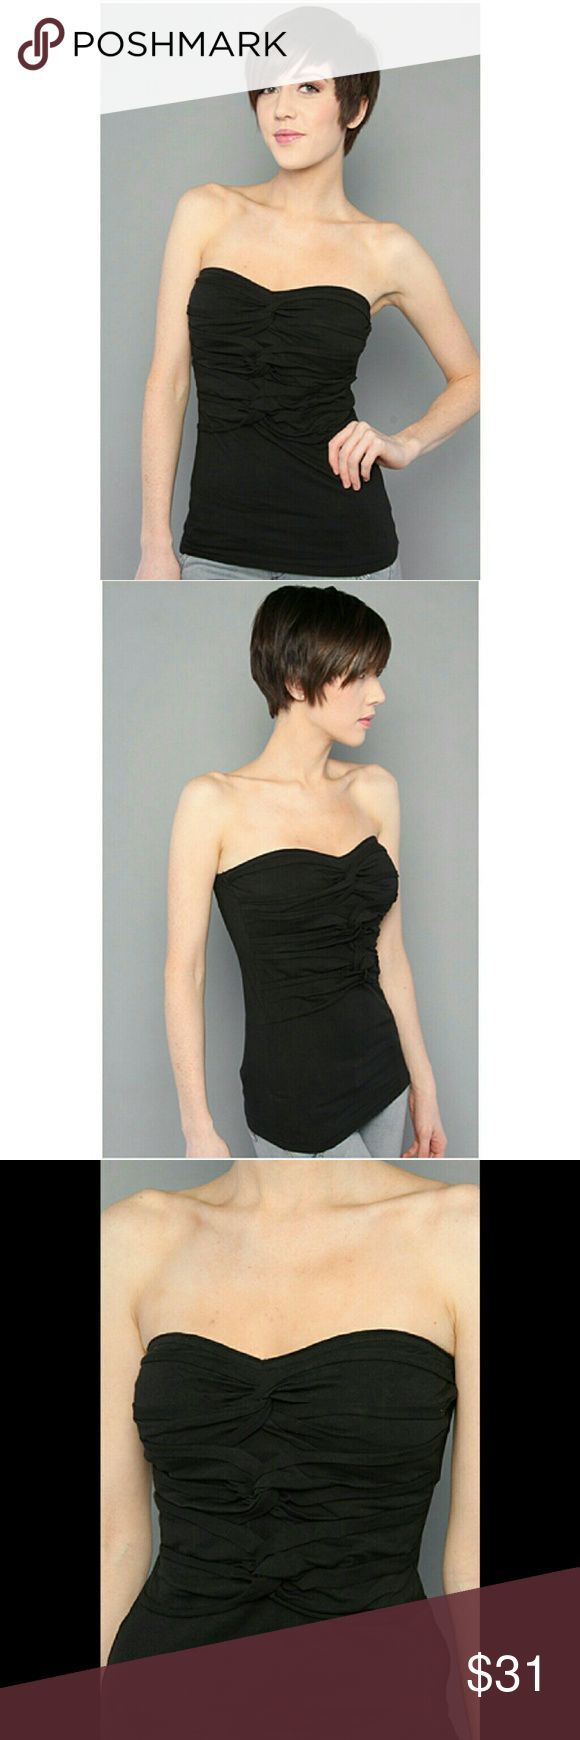 NWT FREE PEOPLE DO THE TWIST BLACK TUBE TOP ??Beautiful top! ****SIZE LARGE ****Purchased from Macy's    ?Sweetheart neckline ? stretch jersey tube top; twisted knots along         center front;  ?elasticized upper back; 95% cotton, 5% spandex.  ??By Free People!    * tags come with :tag was removef by accident, NEVER Worn! Free People Tops Tank Tops